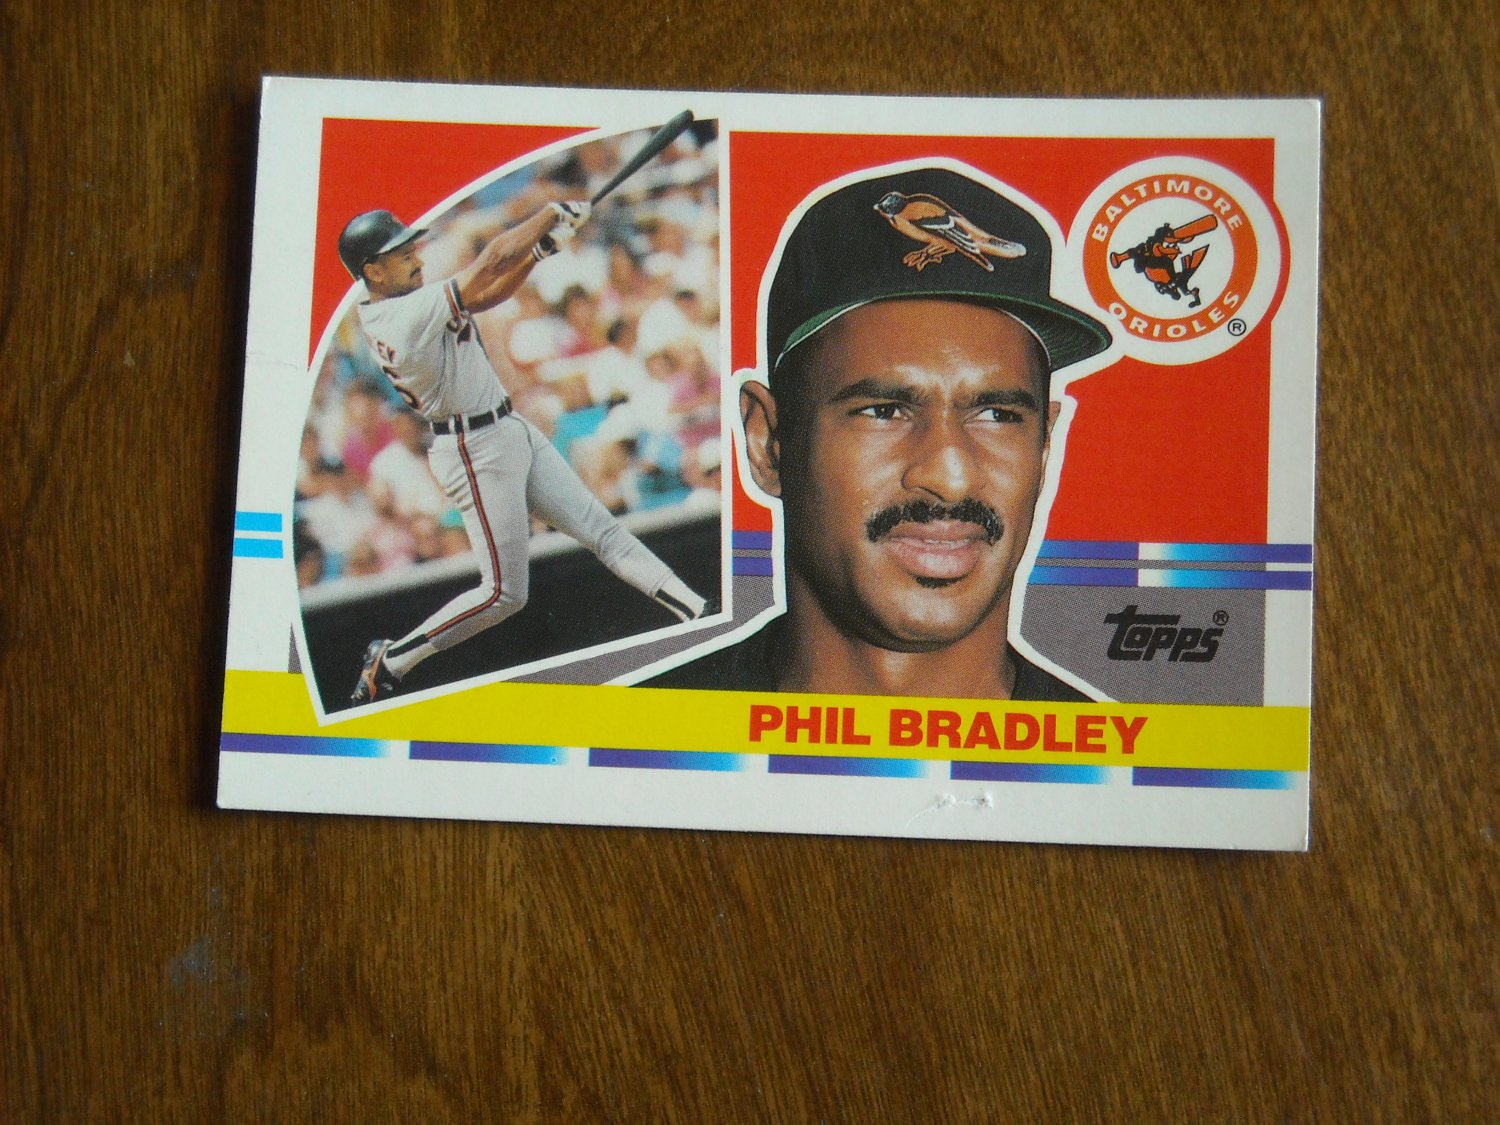 Phil Bradley Baltimore Orioles Outfield Card No. 202 - 1990 Topps Baseball Card